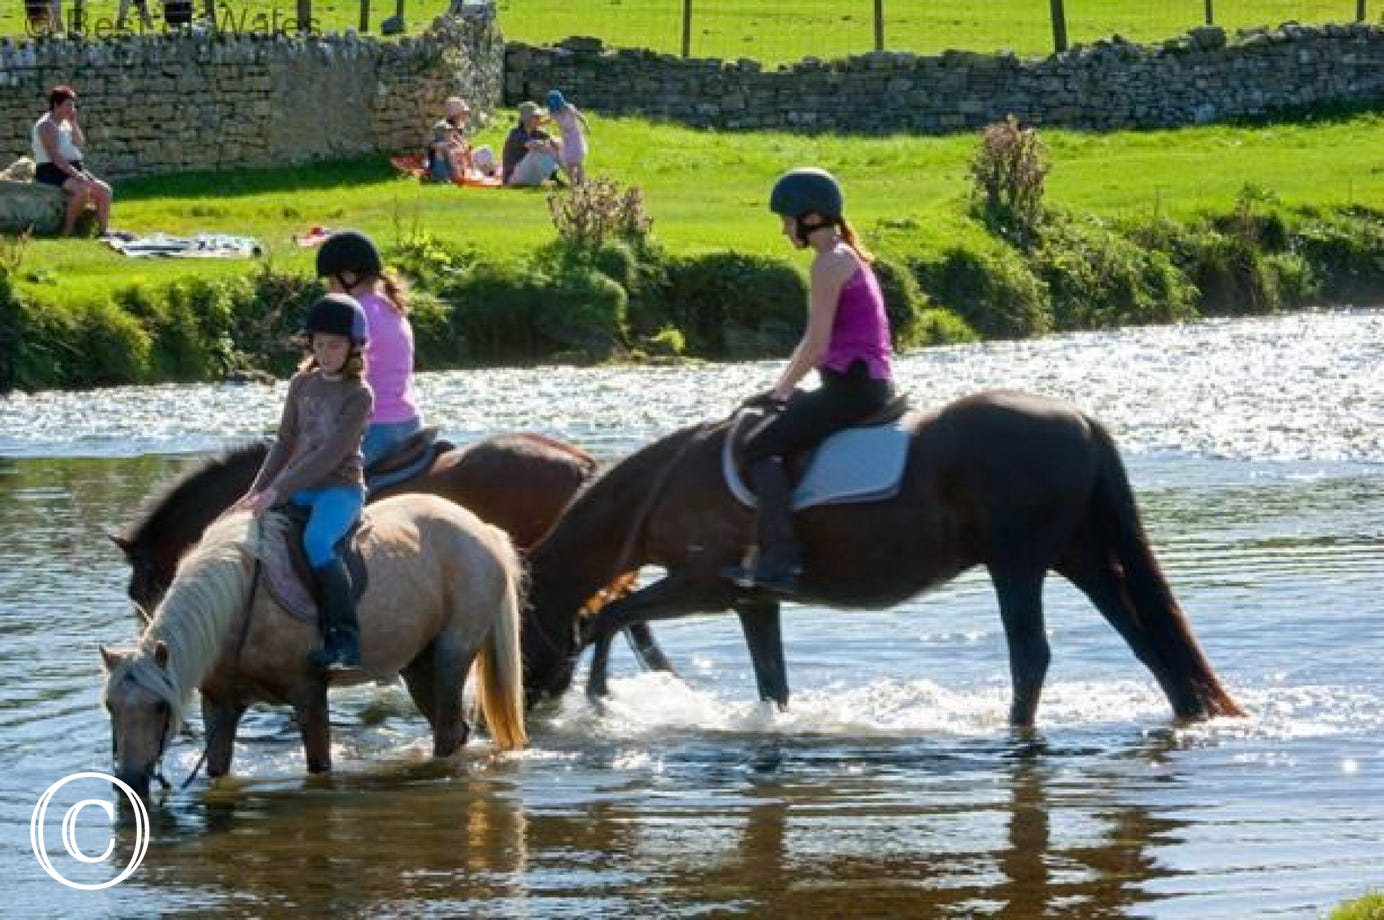 Ogmore Farm Horse Riding Centre, 8 miles from your cottage